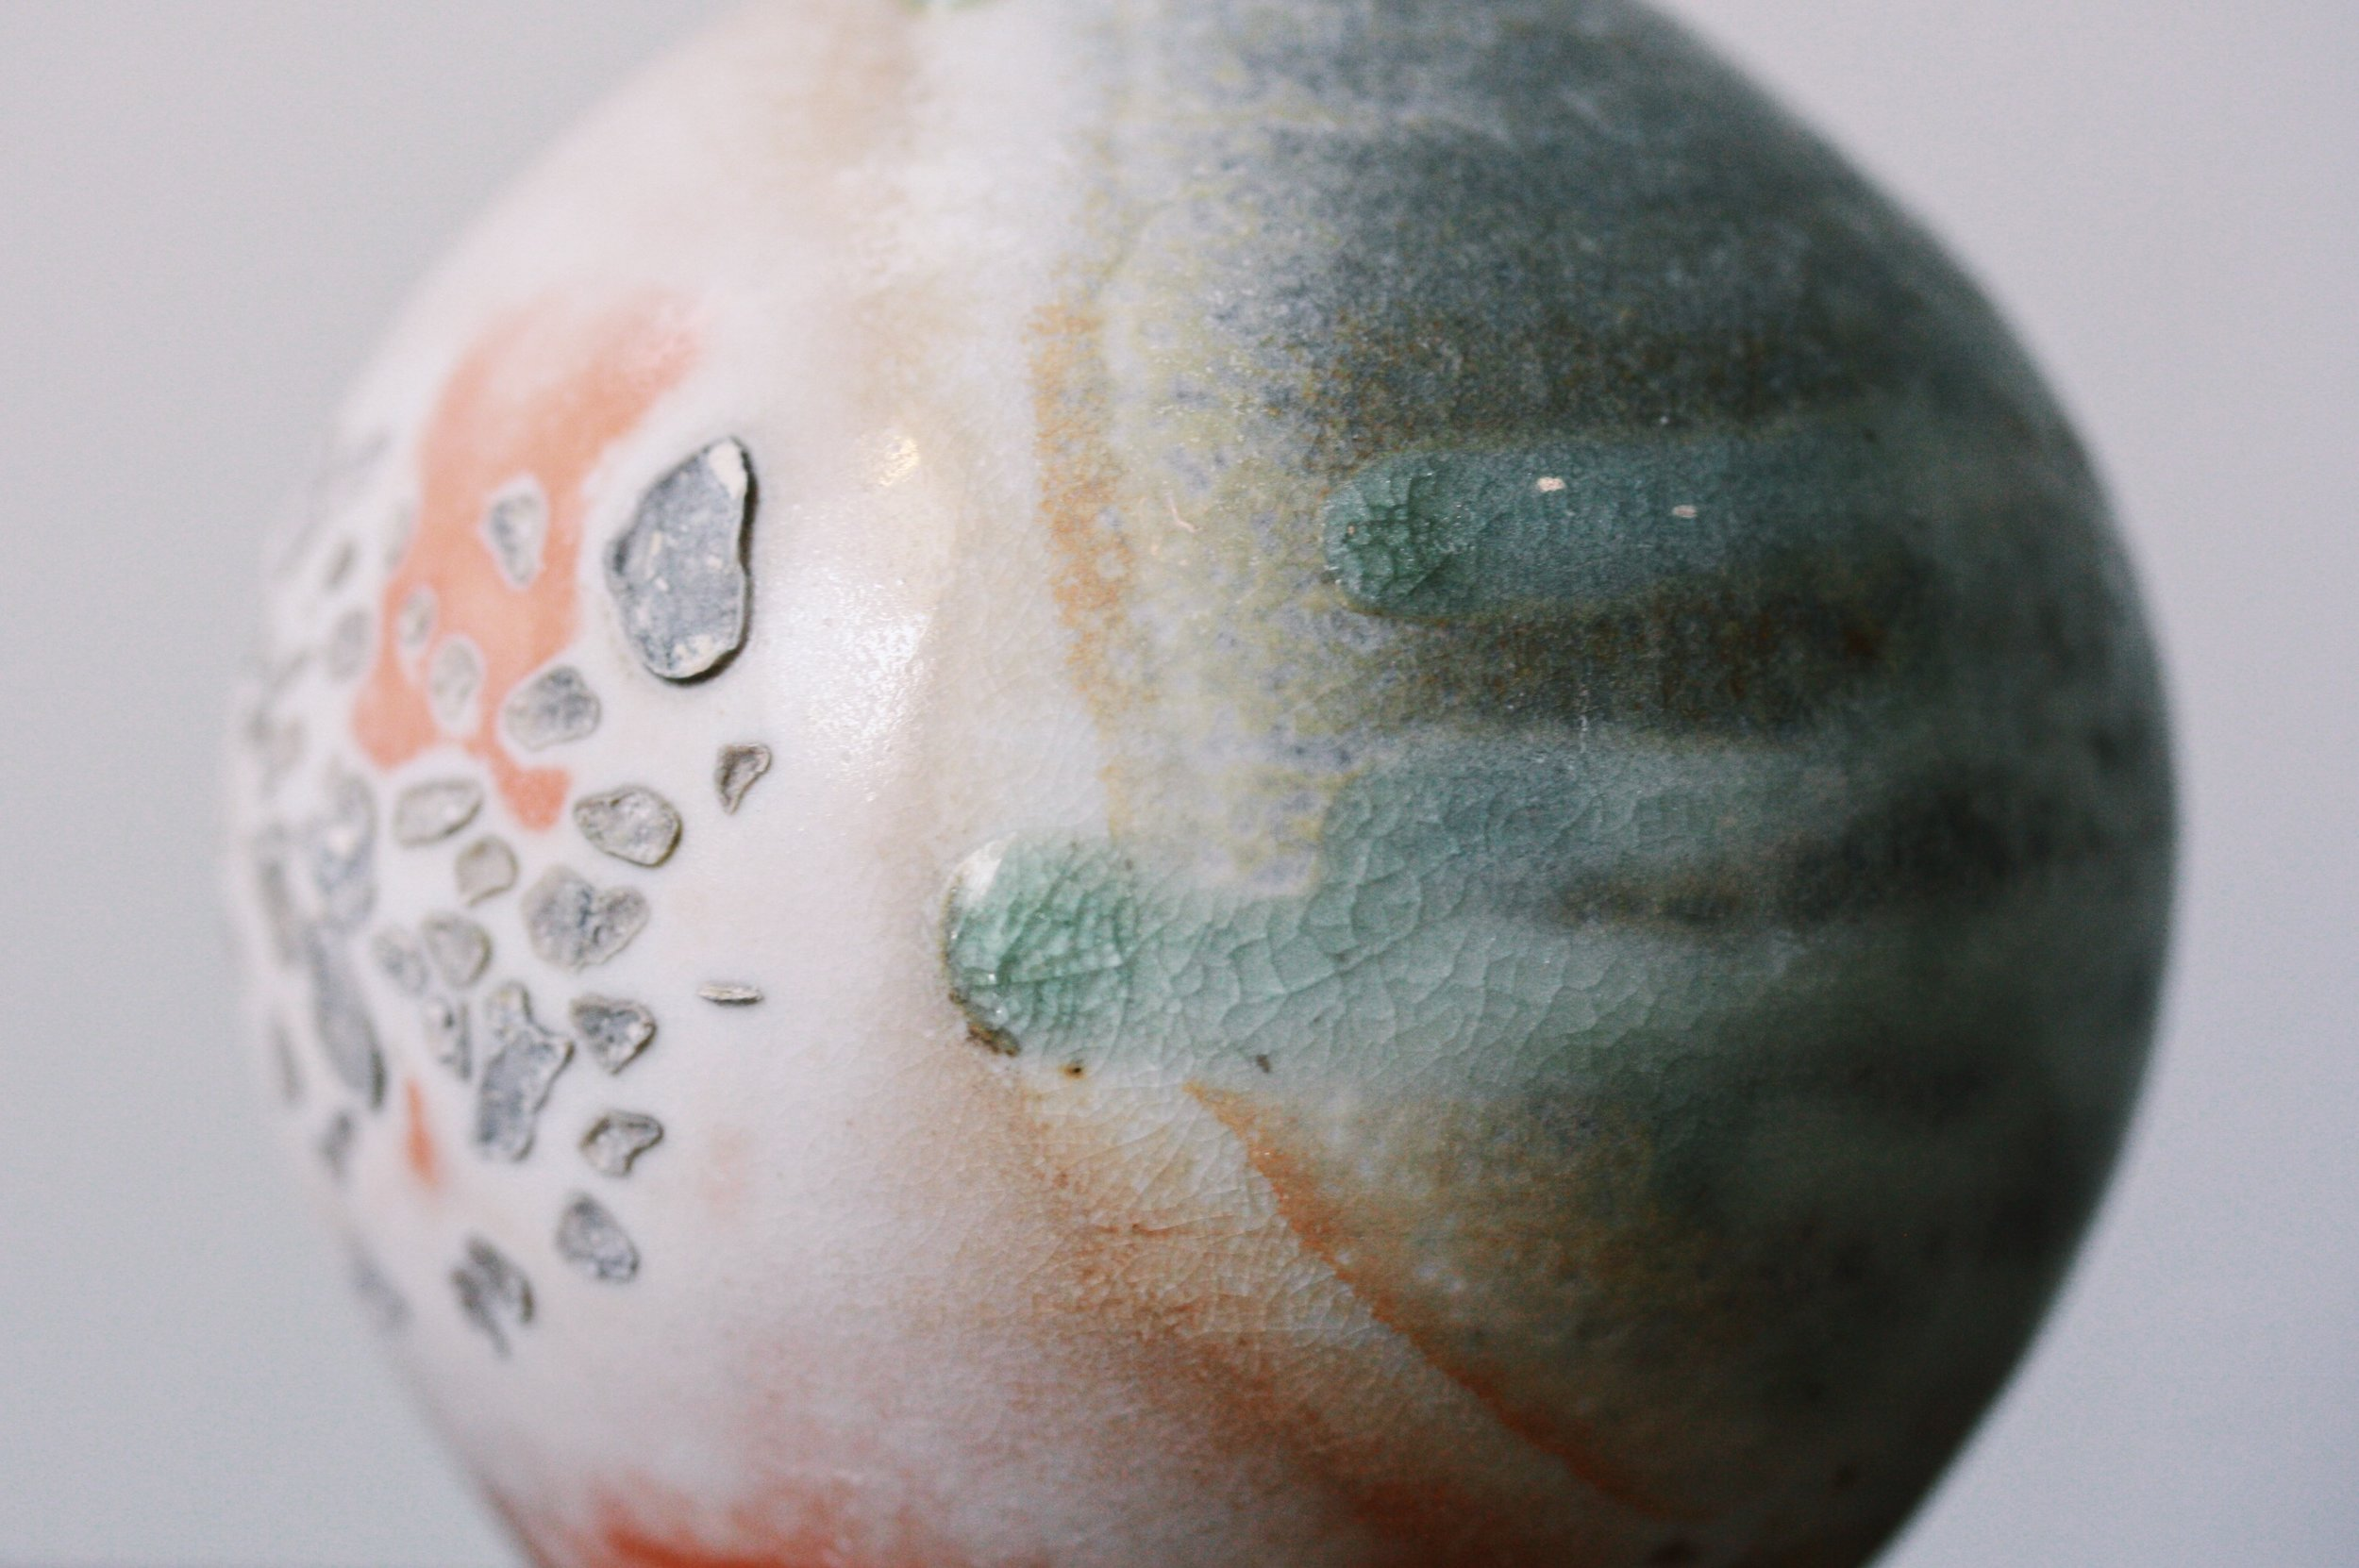 Woodfired porcelain vase with ash drips - Emma Smith